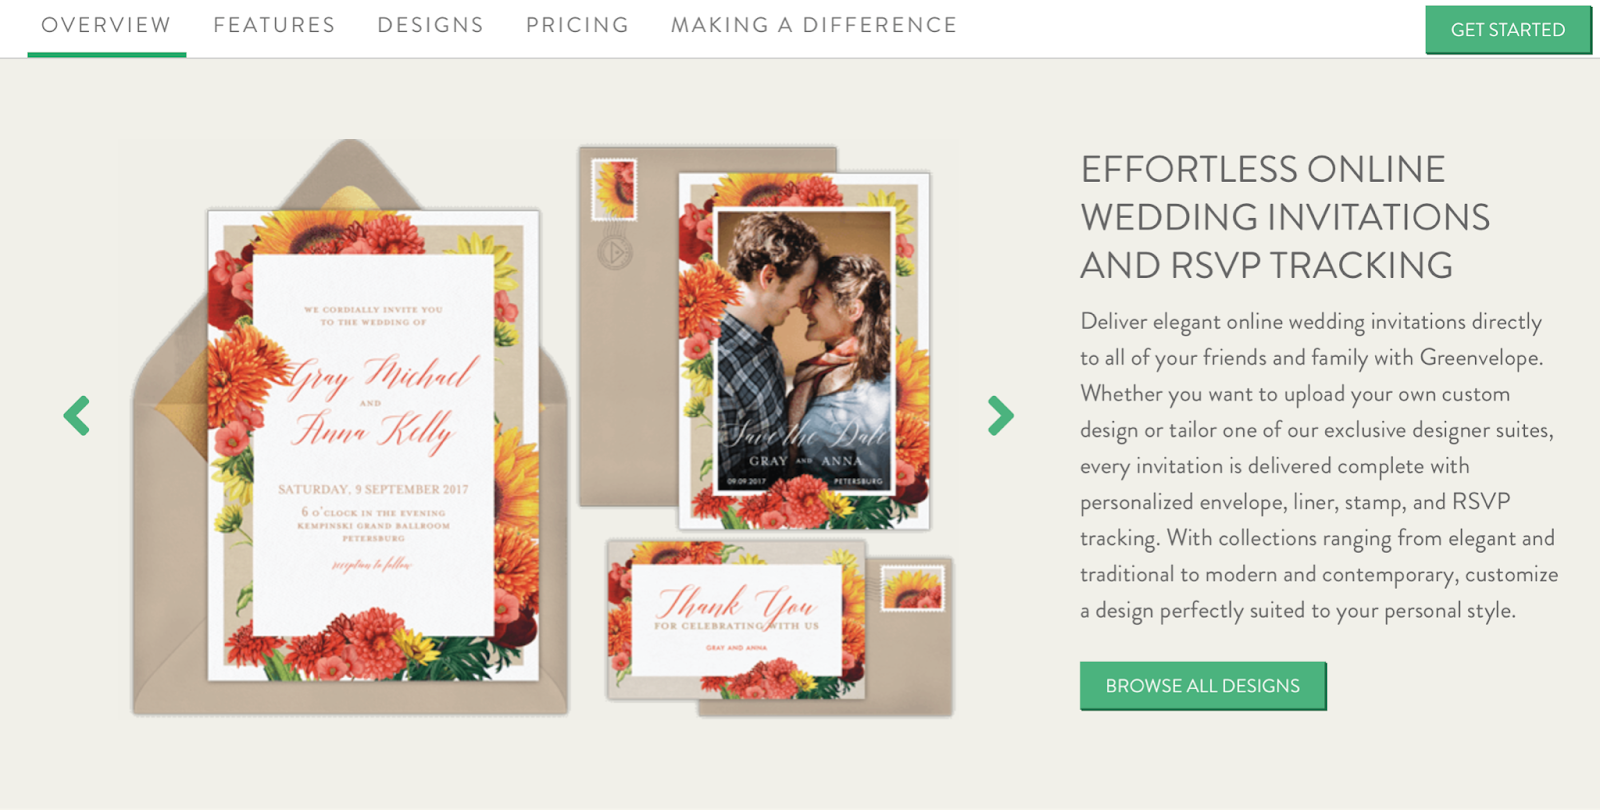 Photo of online wedding invitation suite from GreenVelope